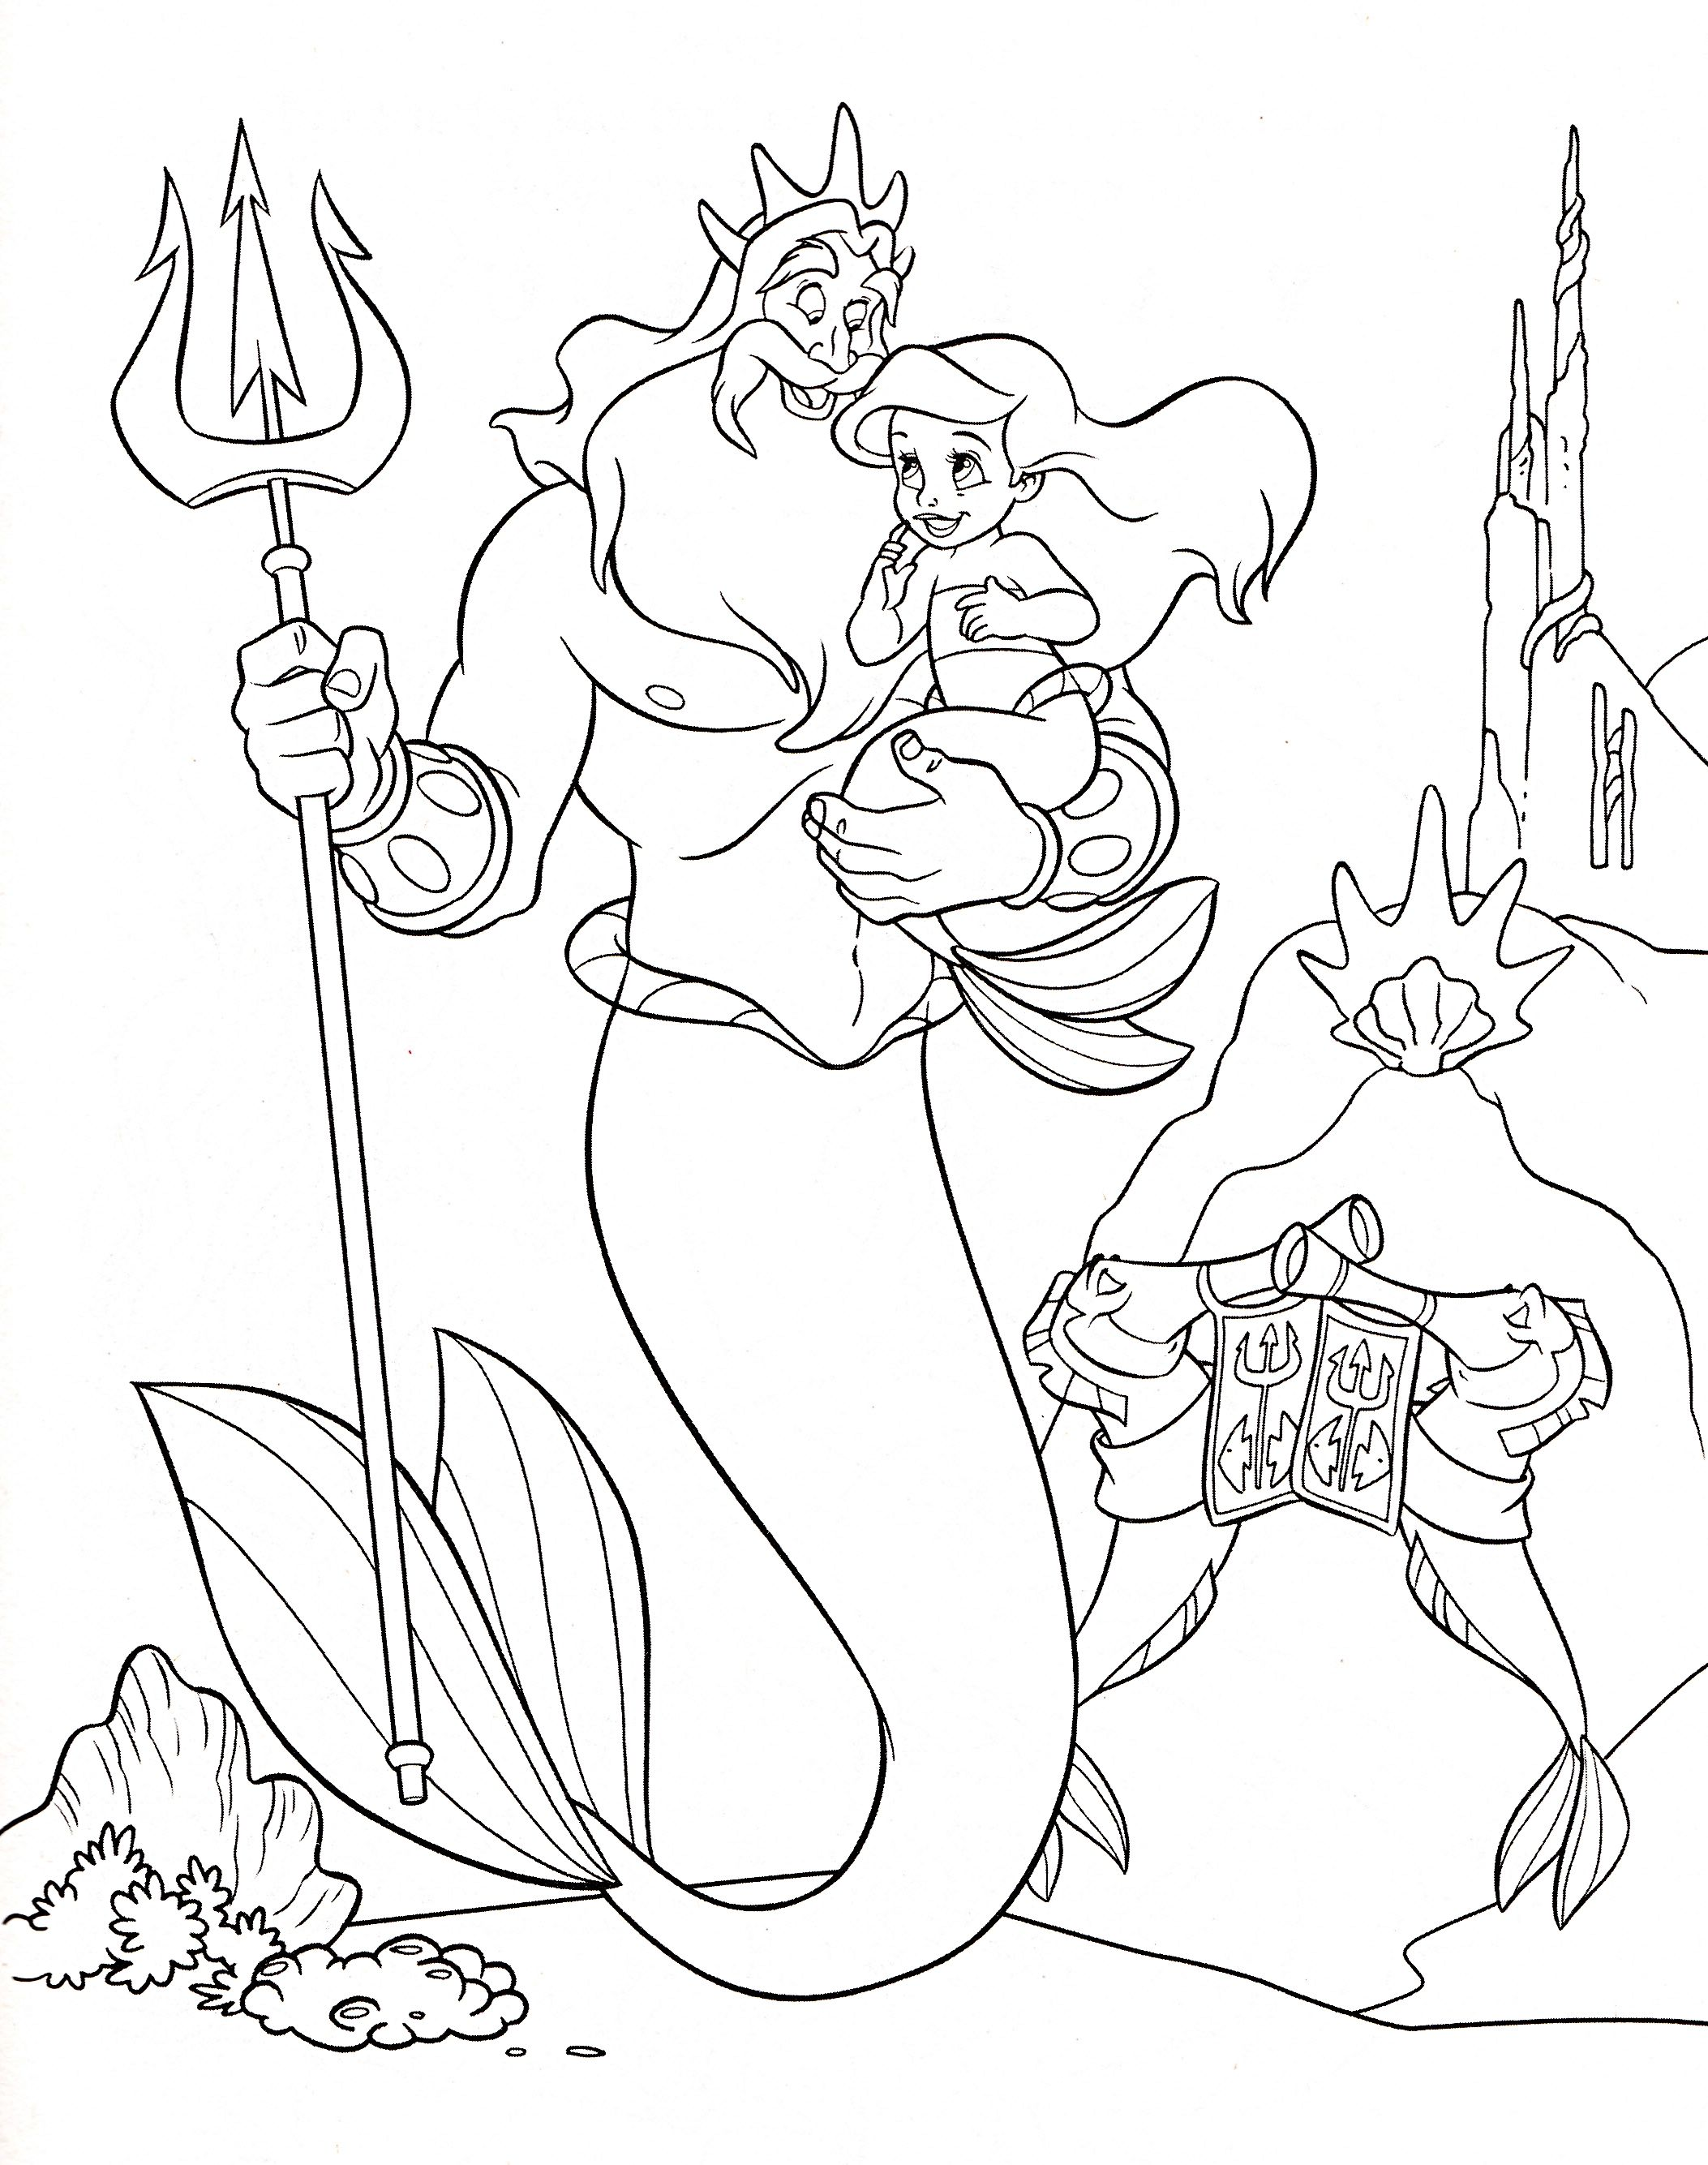 Free coloring disney princess pages - Walt Disney Coloring Page Of King Triton And Princess Ariel From The Little Mermaid Ariel S Beginning Hd Wallpaper And Background Photos Of Walt Disney